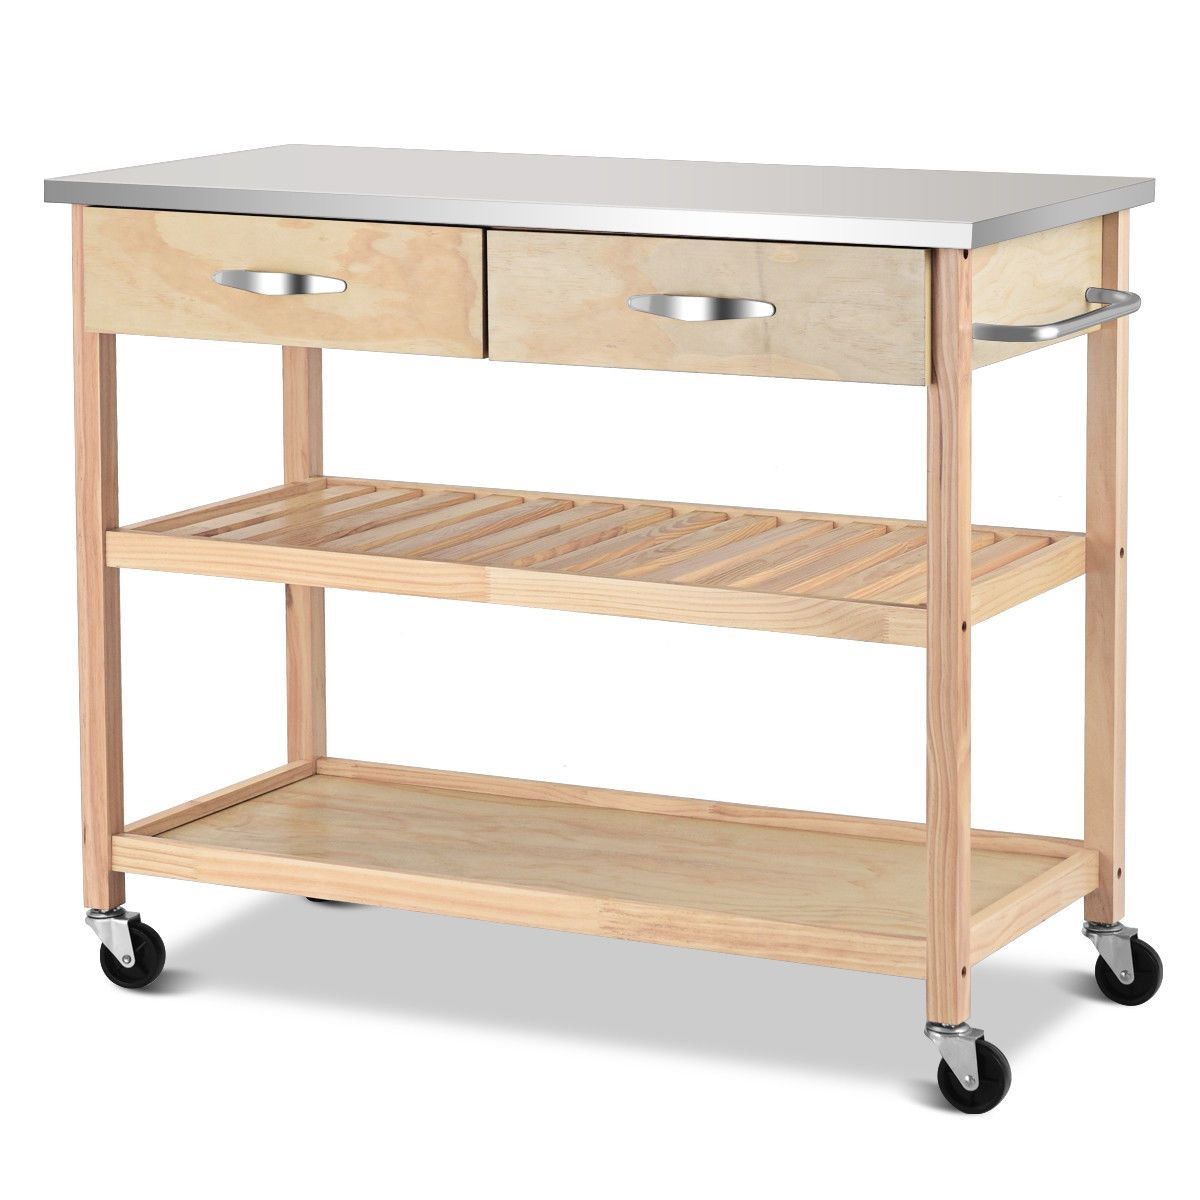 Rolling Kitchen Trolley Cart Island With Stainless Steel Countertop Kitchen Trolley Stainless Steel Countertops Kitchen Trolley Cart